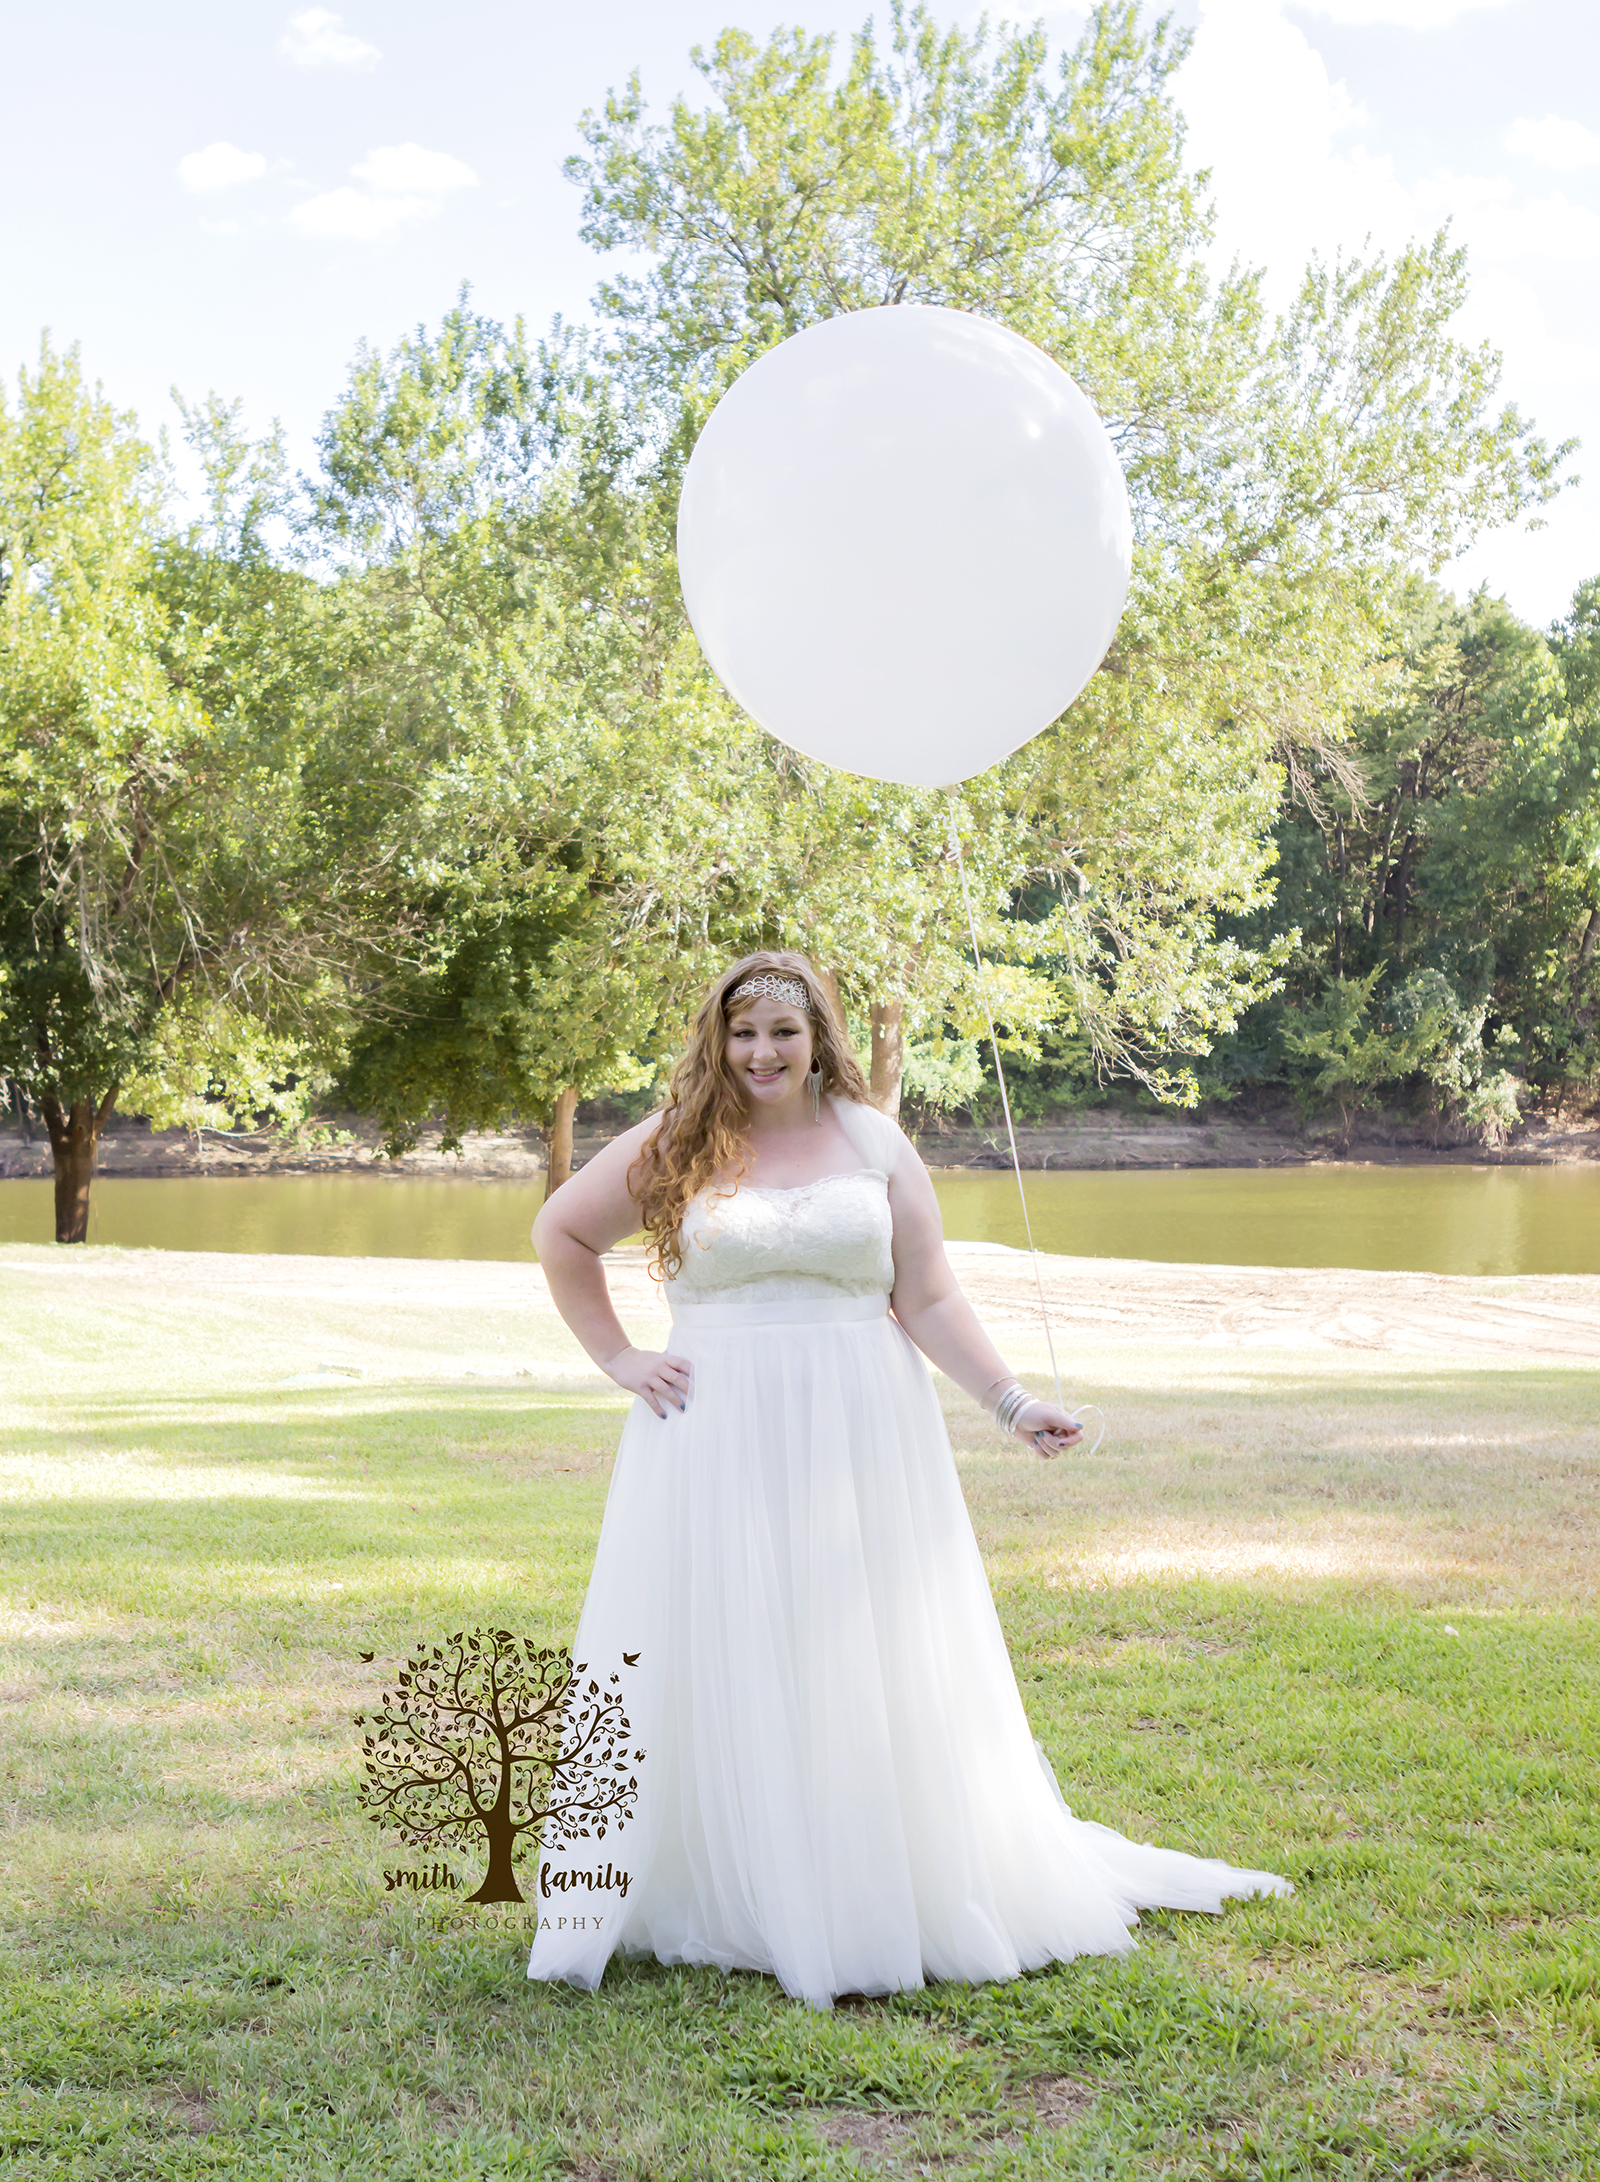 Kia and Madison chose a location on the banks of the Brazos River in Waco, Texas for their backyard wedding.  Photo credit:  Amber Payne for Smith Family Photography